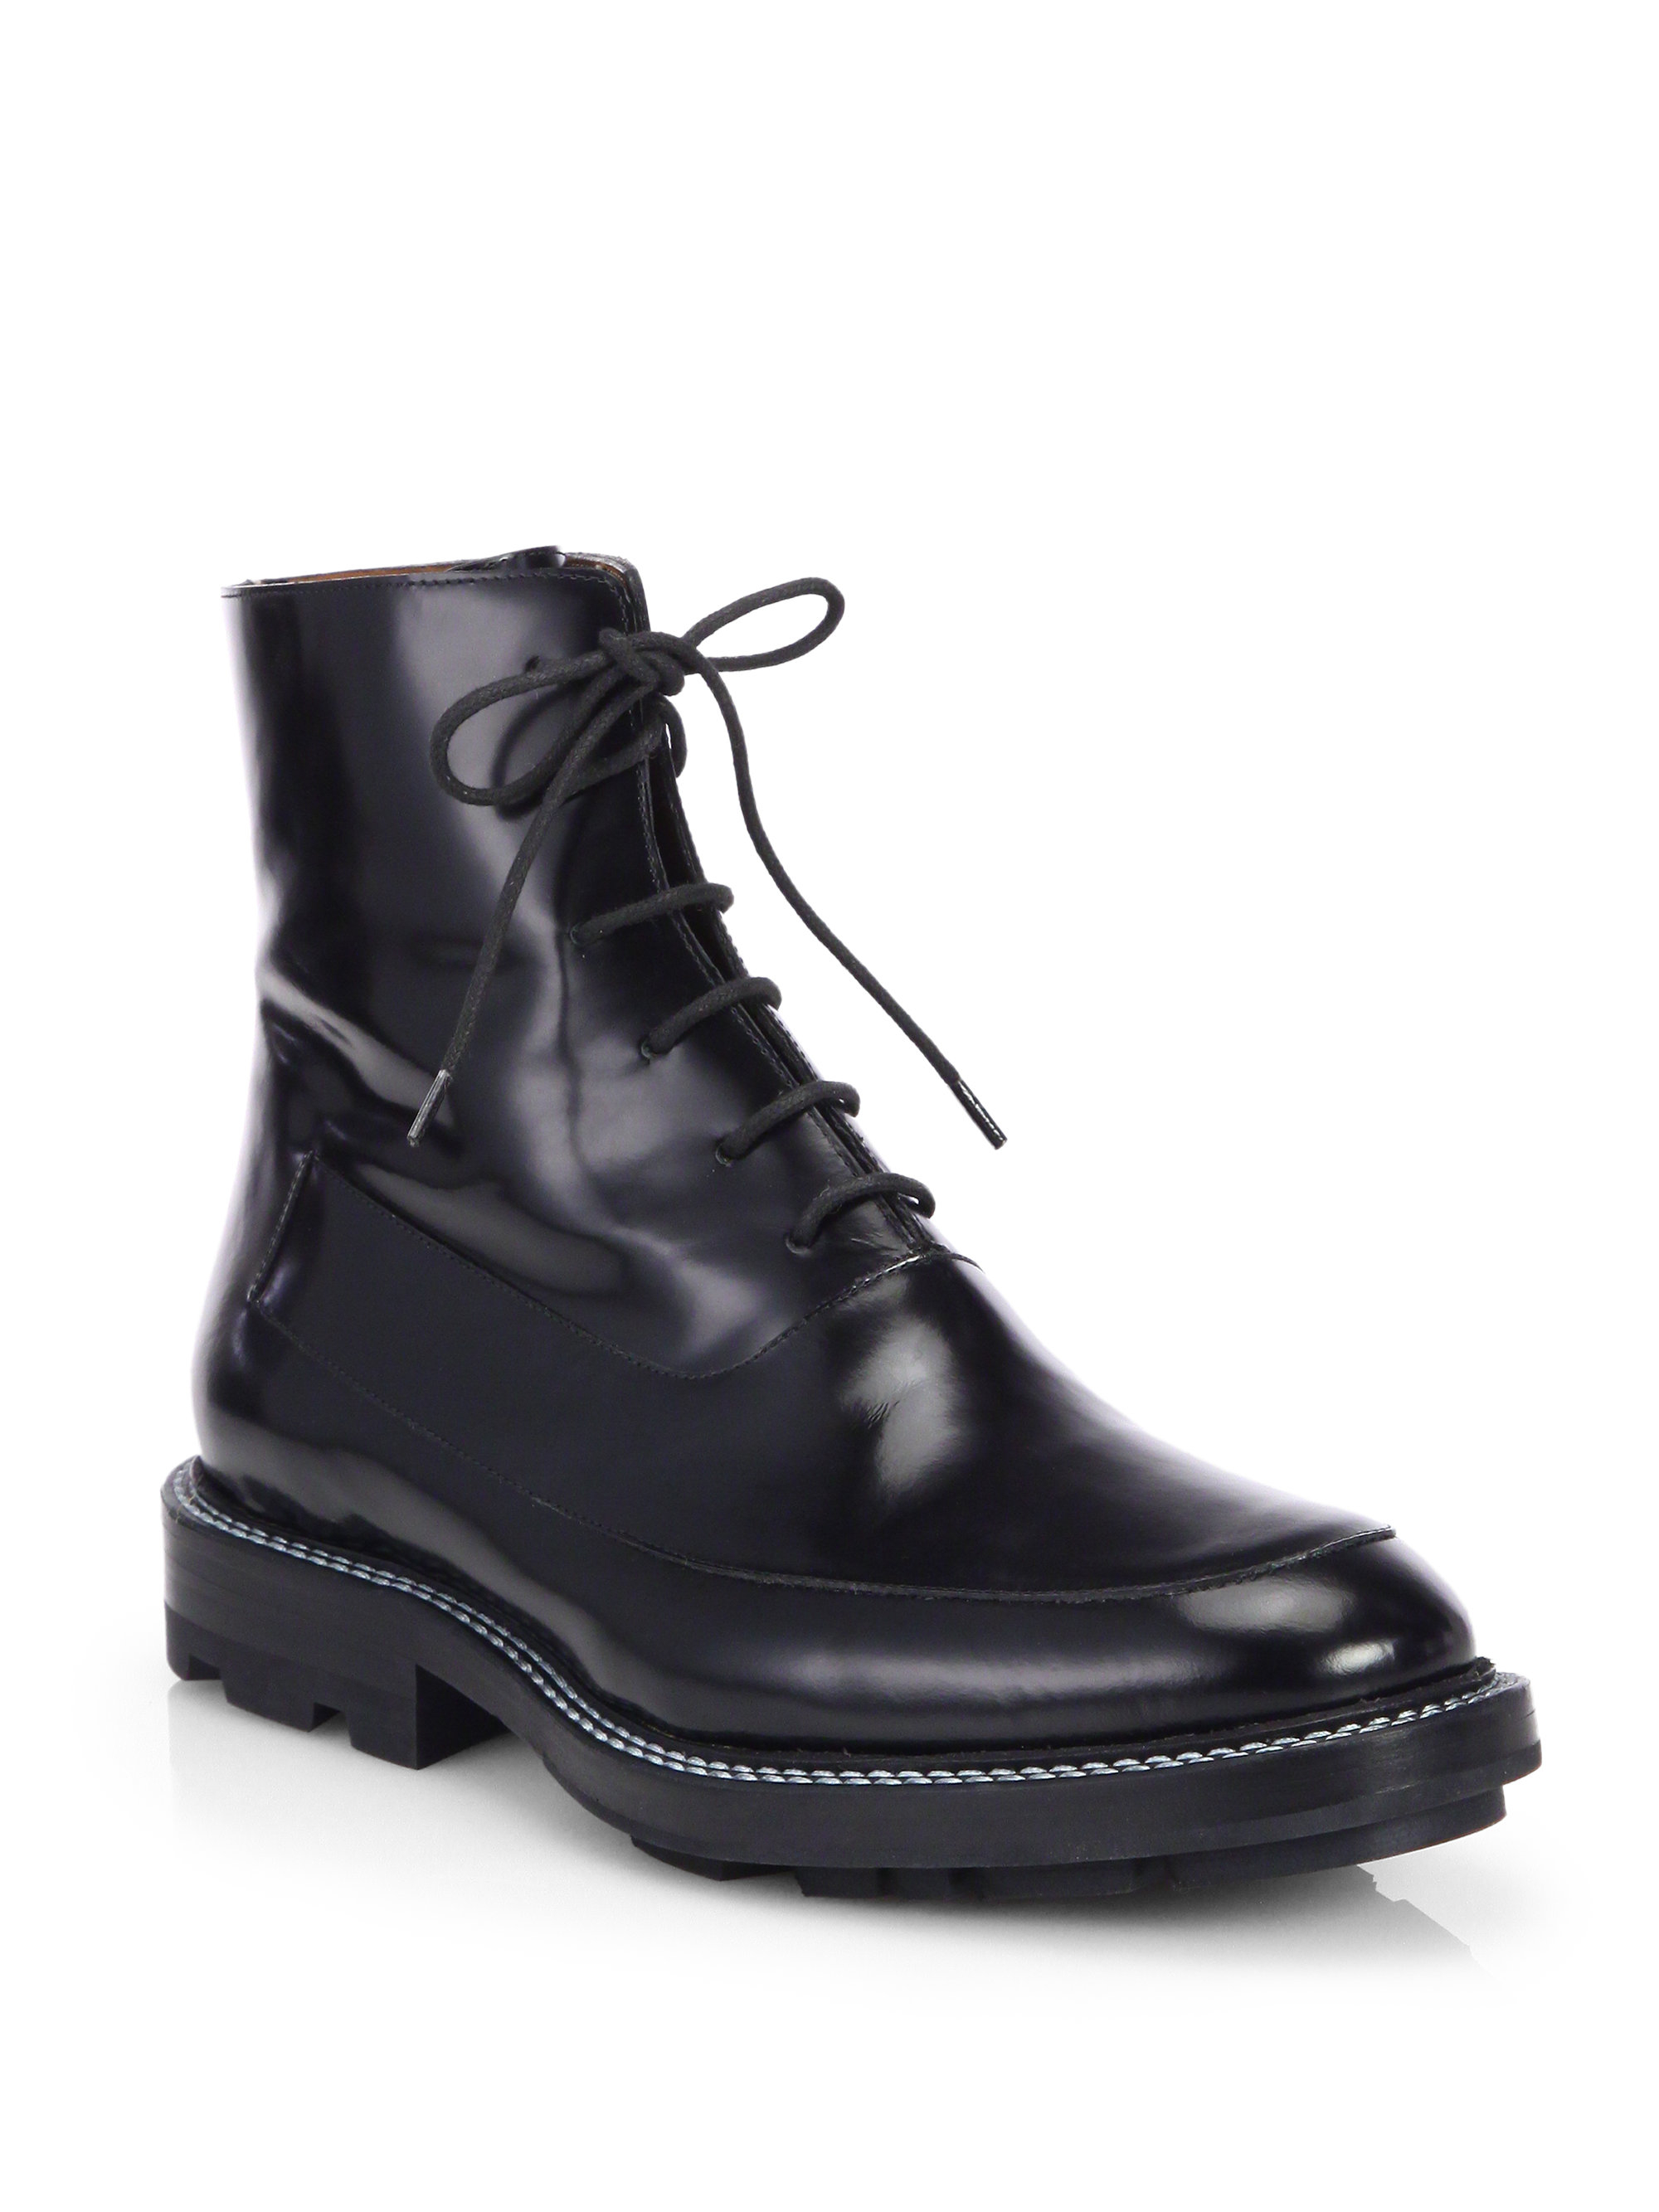 Lyst Jil Sander Polished Leather Lace Up Ankle Boots In